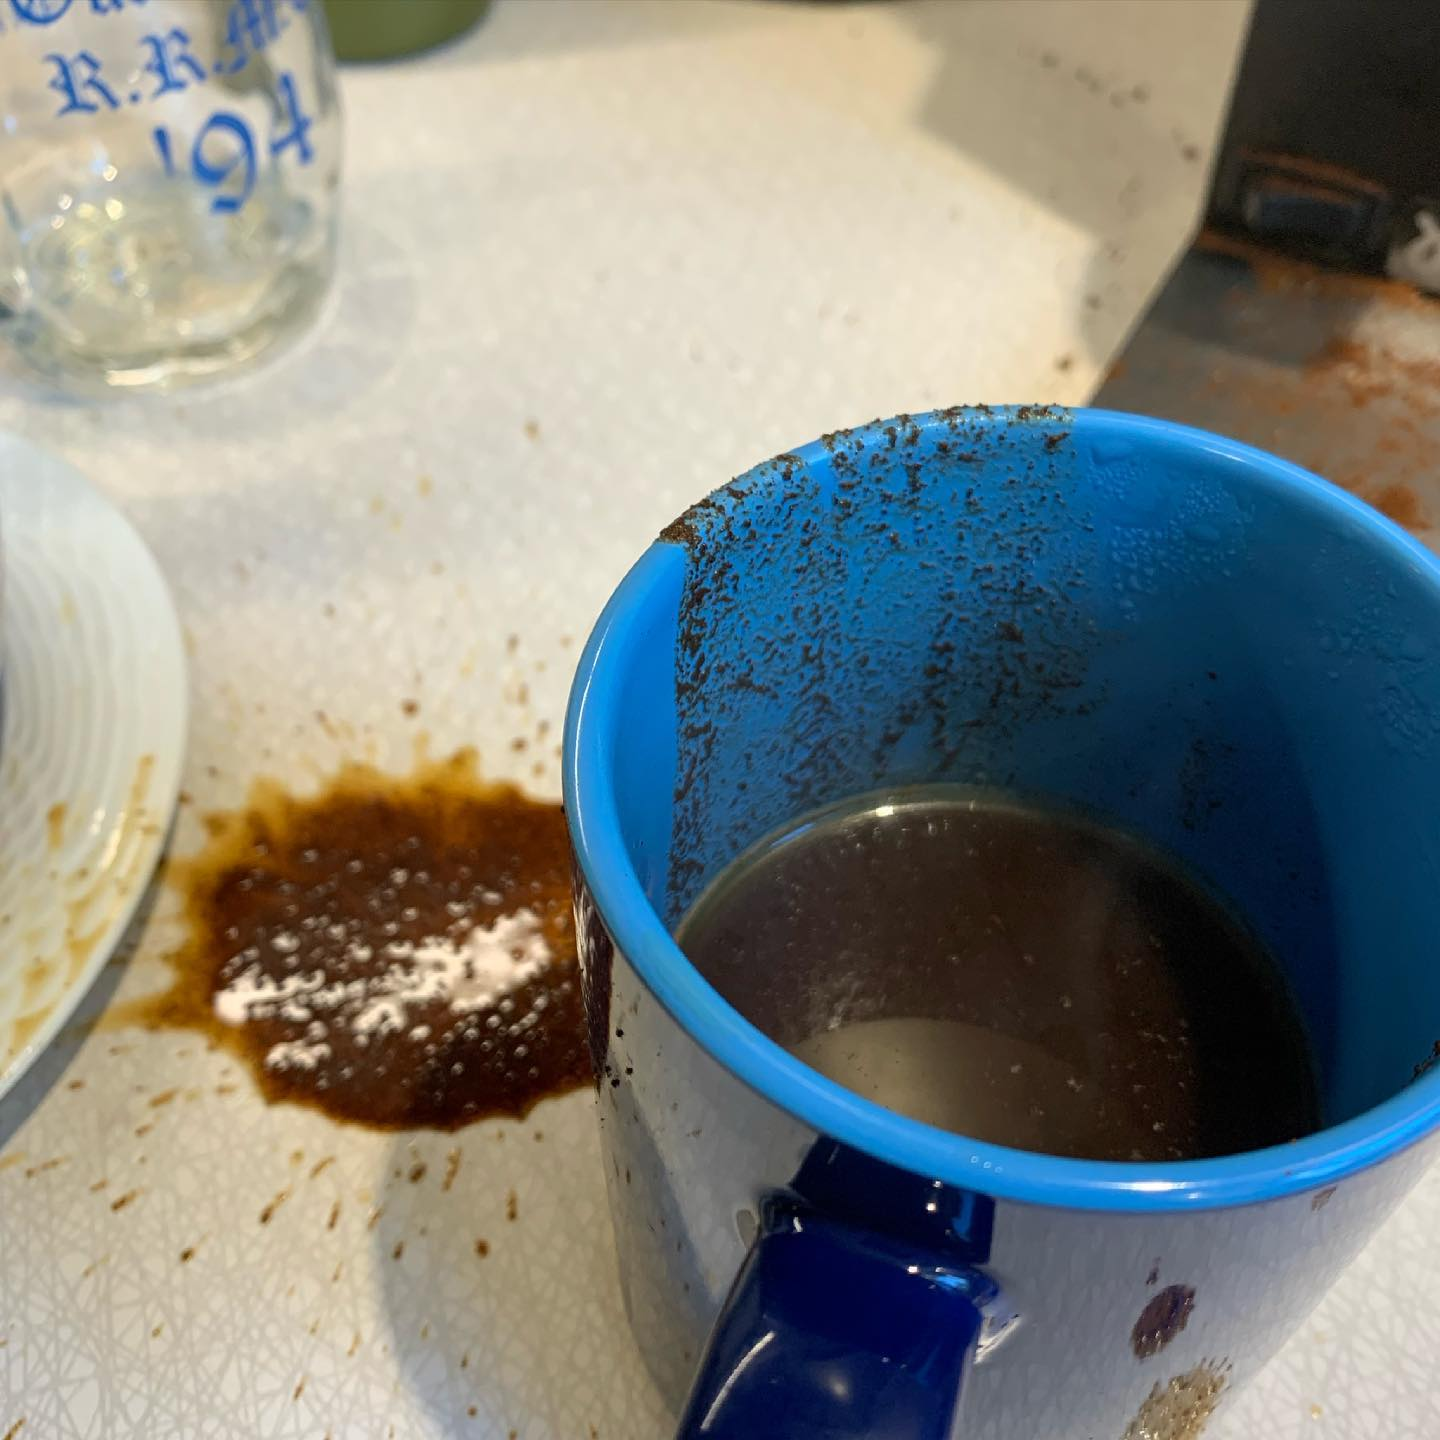 Just trying to enjoy a nice cup of @esquimaltroasting and @elevenspeedcoffee blend and I'm hit with an #aeropressdisaster #yyjcoffee #oops #whatamess #caffein8